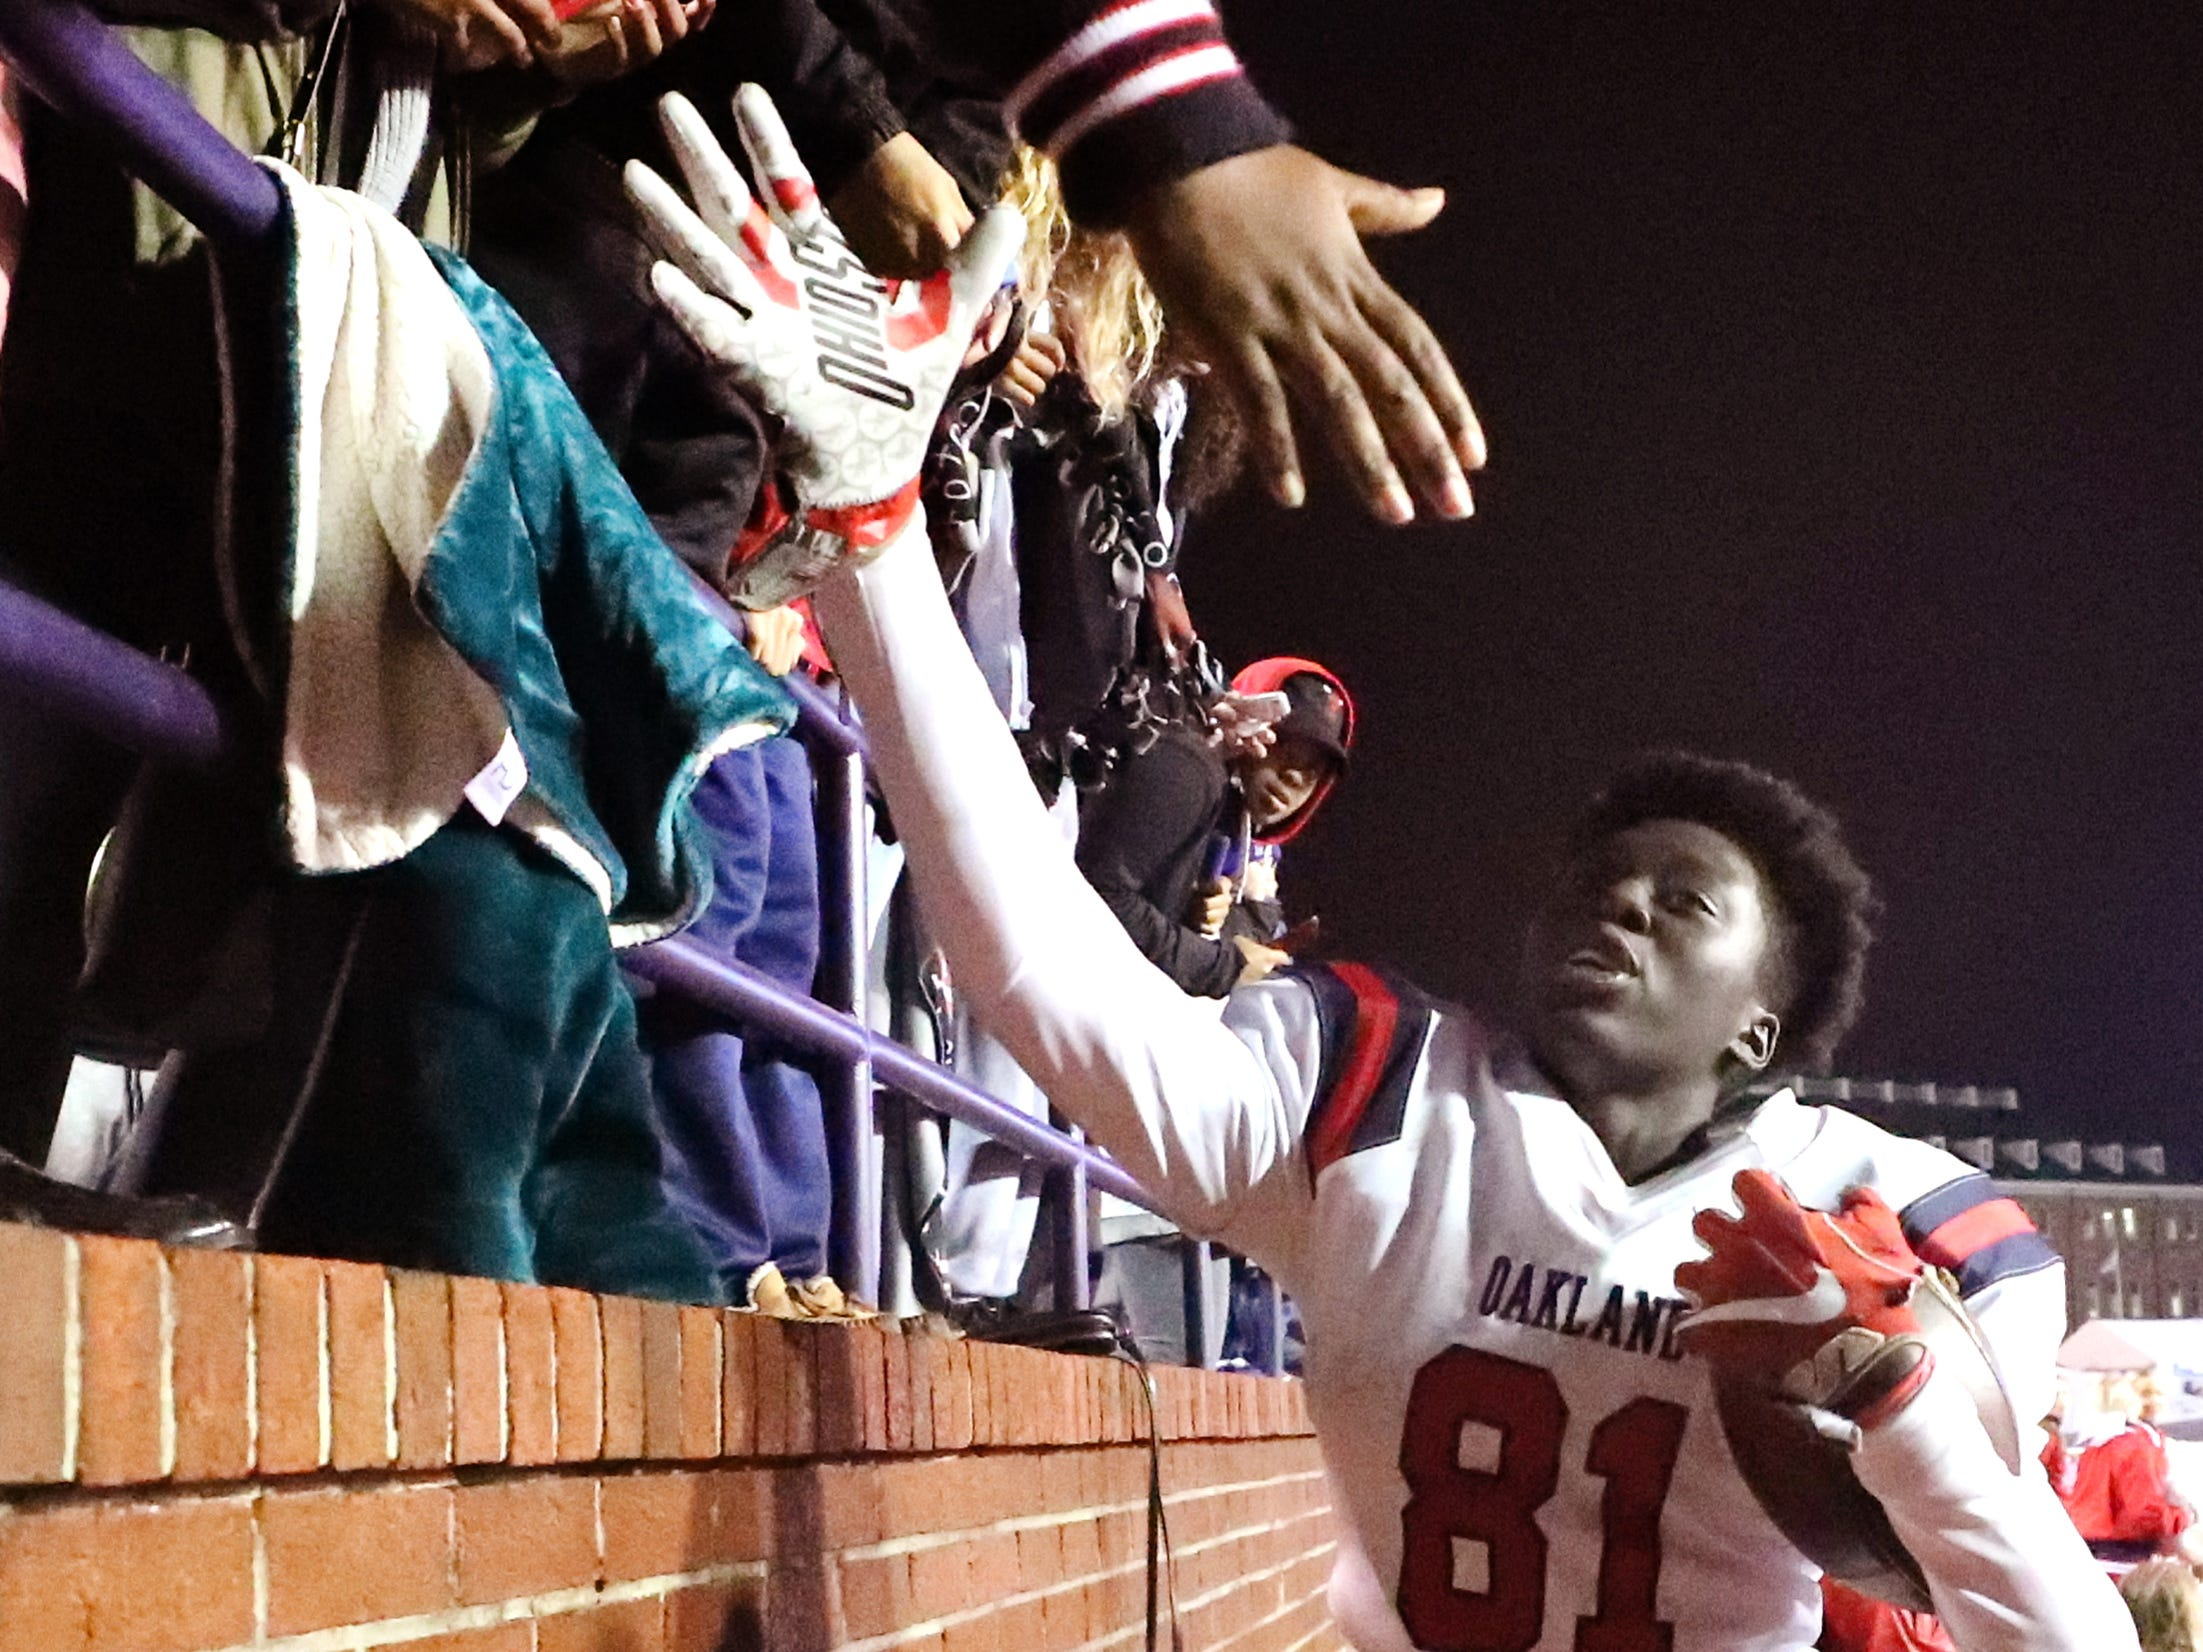 Oakland High School Dixon Luwaju (81) celebrates with fans during the final minutes of the game against Whitehaven during the 6A State Championship BlueCross Bowl game on Thursday, Nov. 29 2018. Oakland won 37-0.